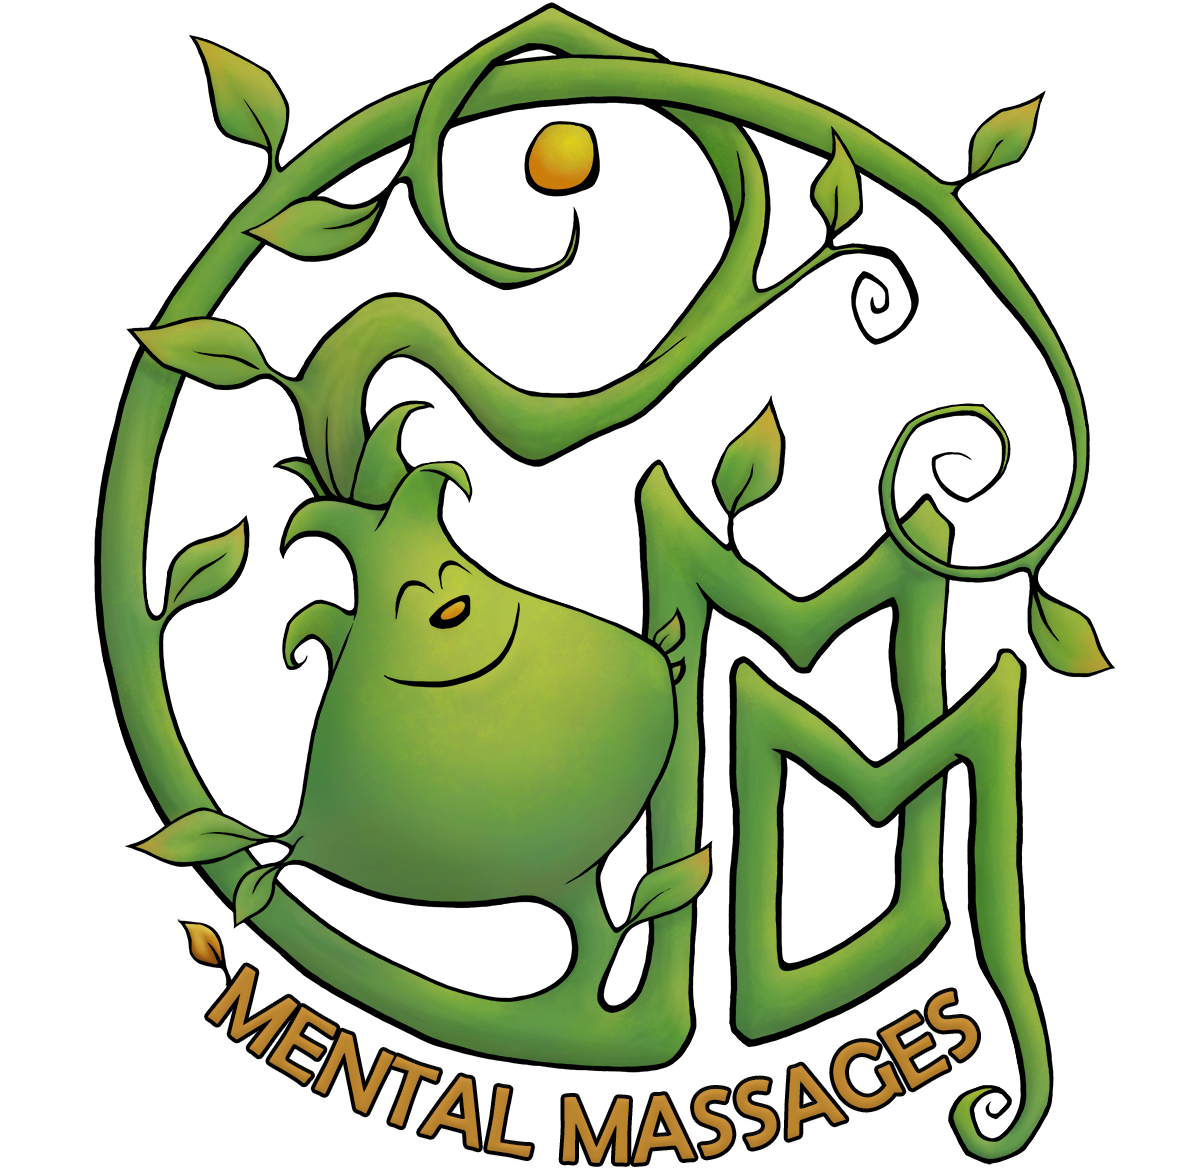 Mental Massages